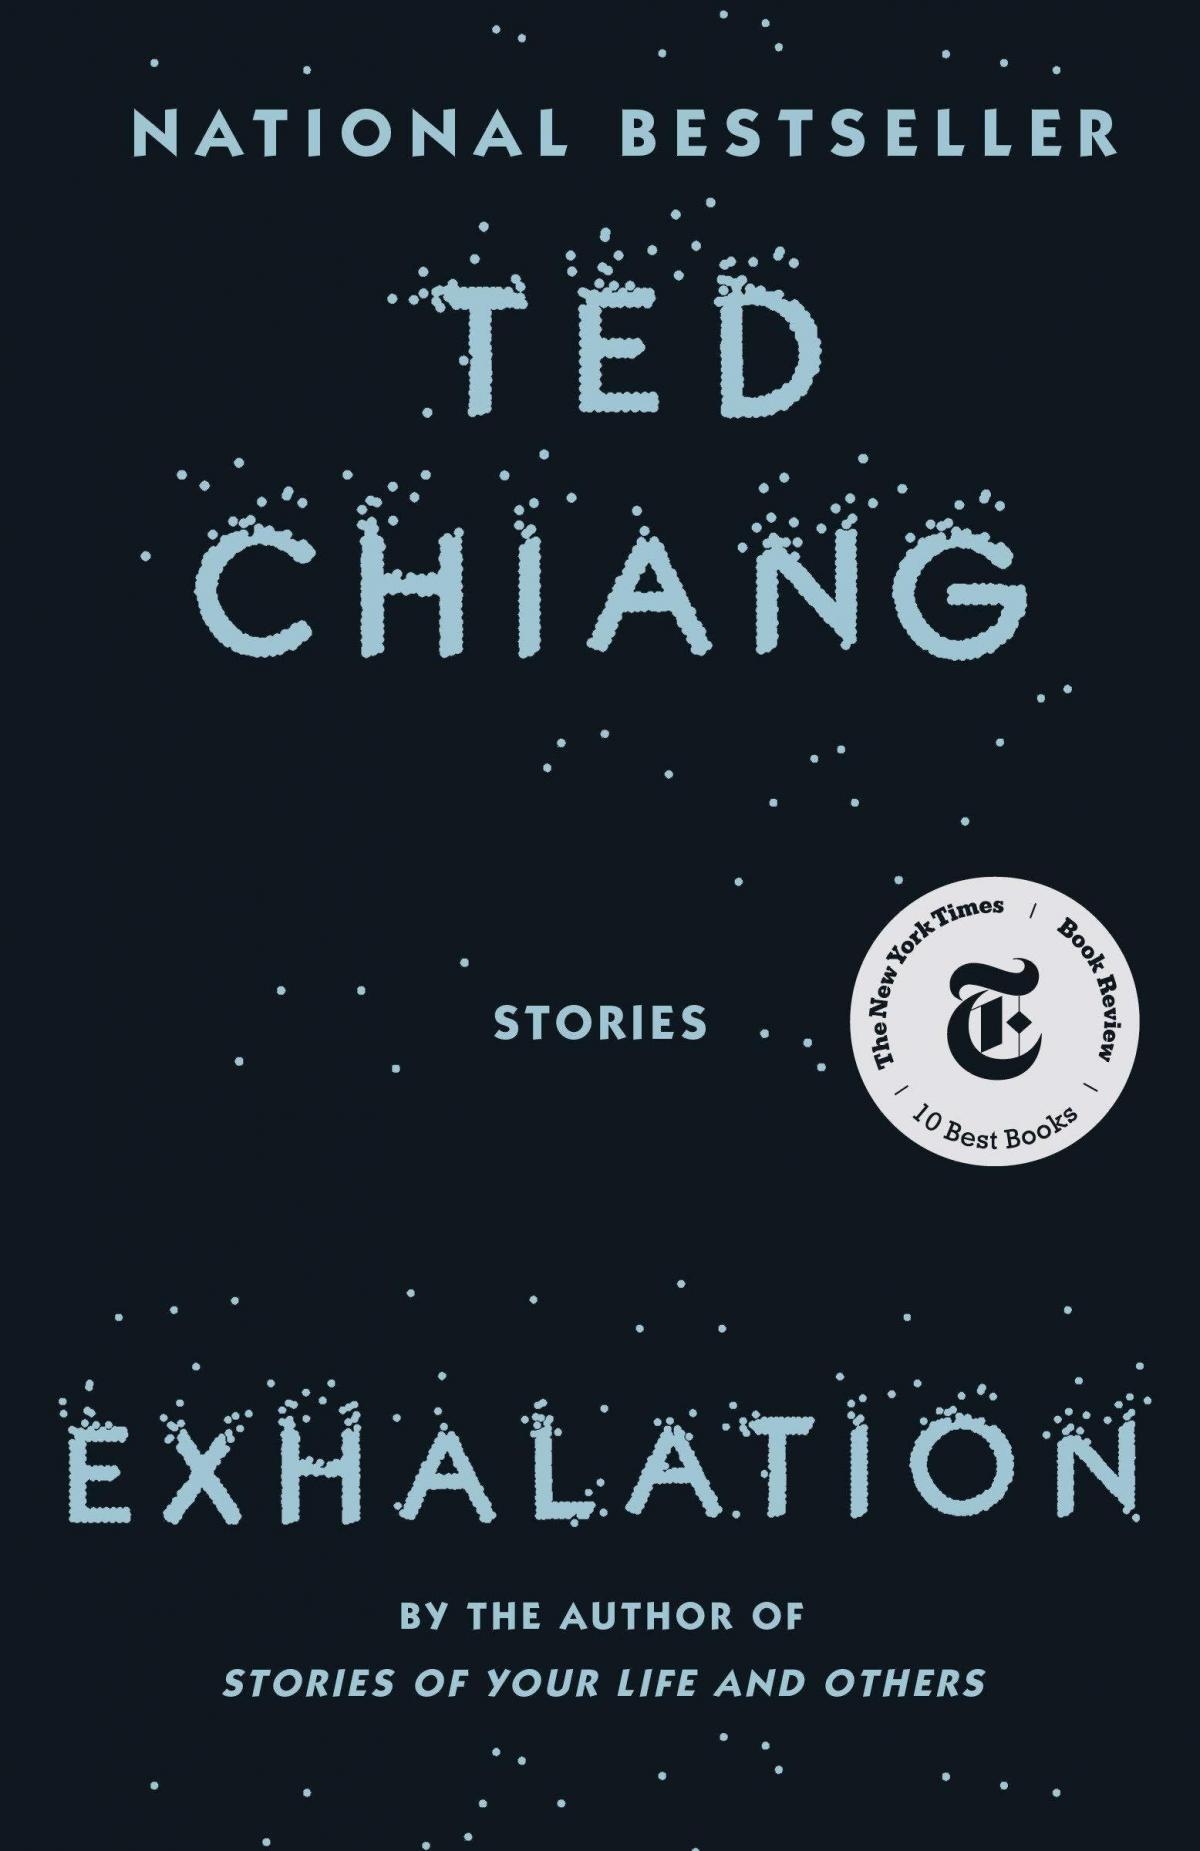 Exhalation: Stories, by Ted Chiang